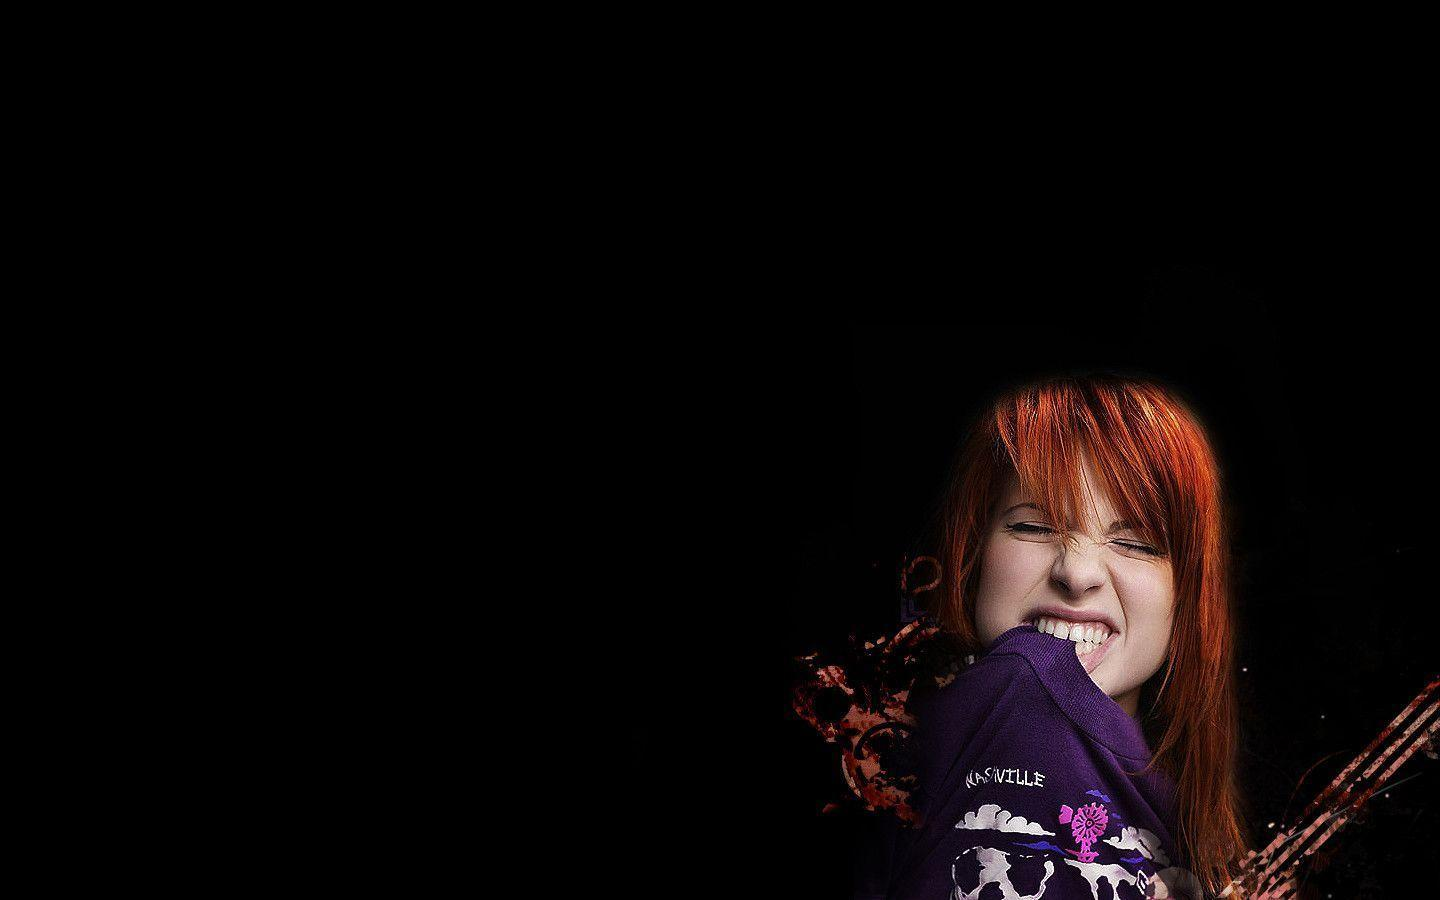 Hayley Williams HD Wallpapers - Wallpaper Cave